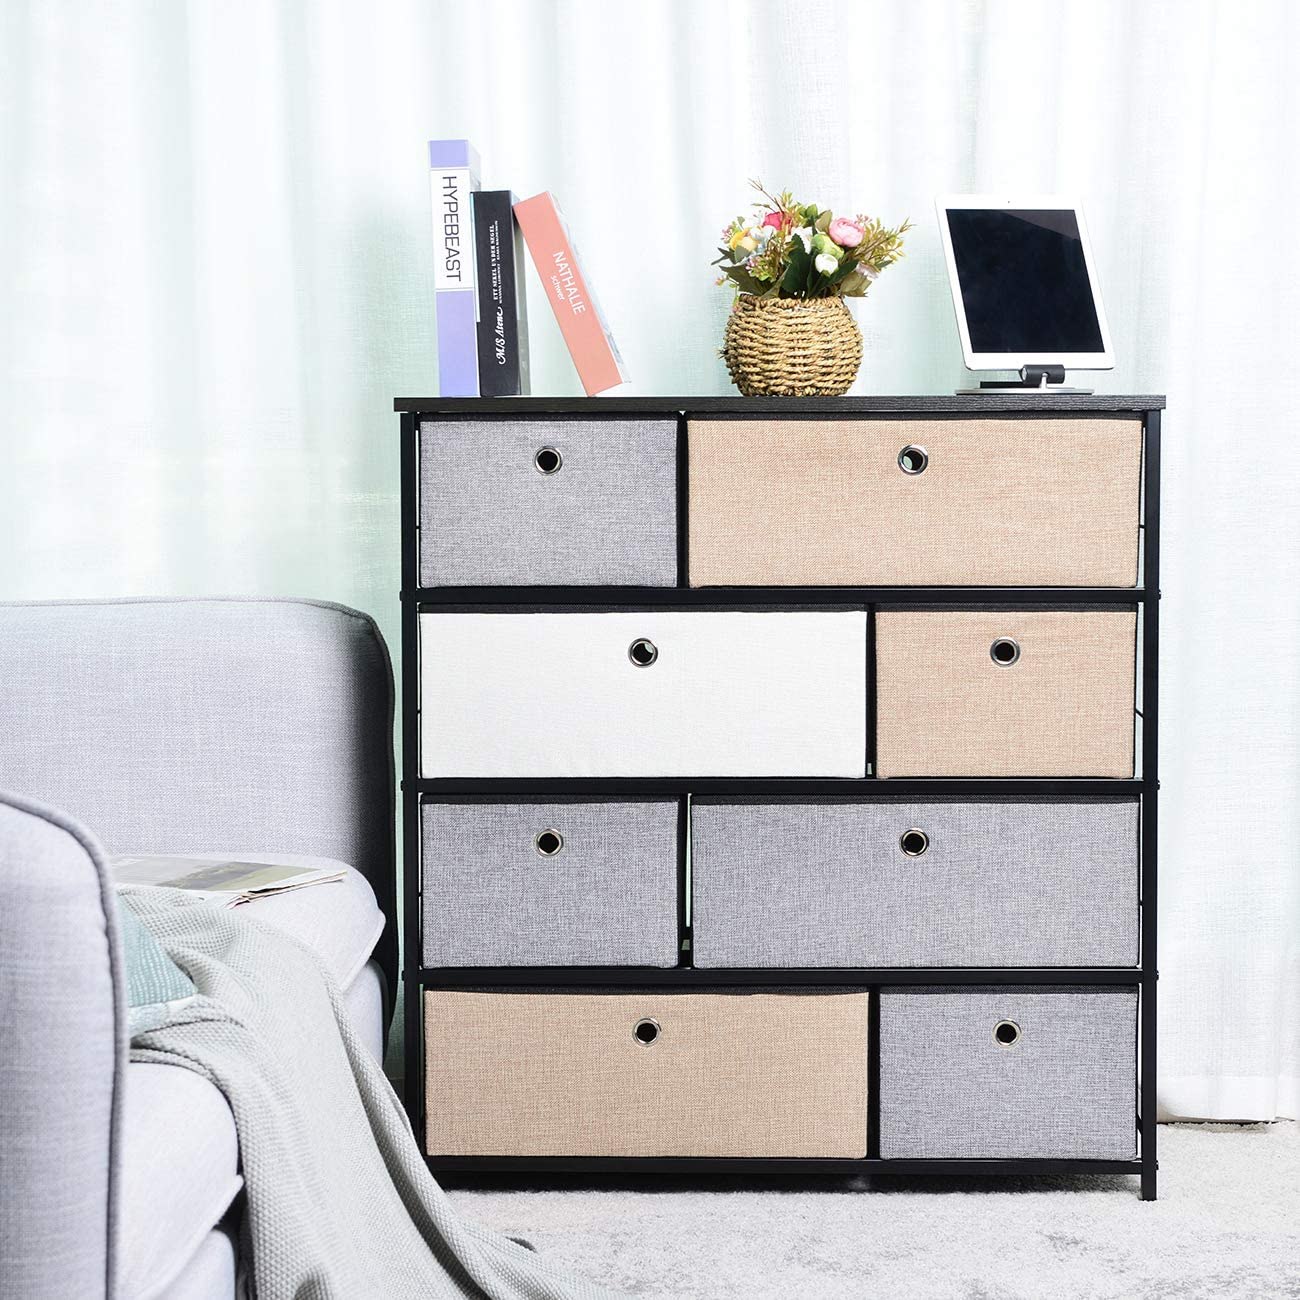 Extra Wide Fabric Storage Organizer 3 Mixed Colors Clothes Drawer Dresser with Sturdy Steel Frame, Wooden Tabletop, Easy Pull Fabric Bins Organizer Unit for Bedroom Hallway Entryway Closet-8Drawers